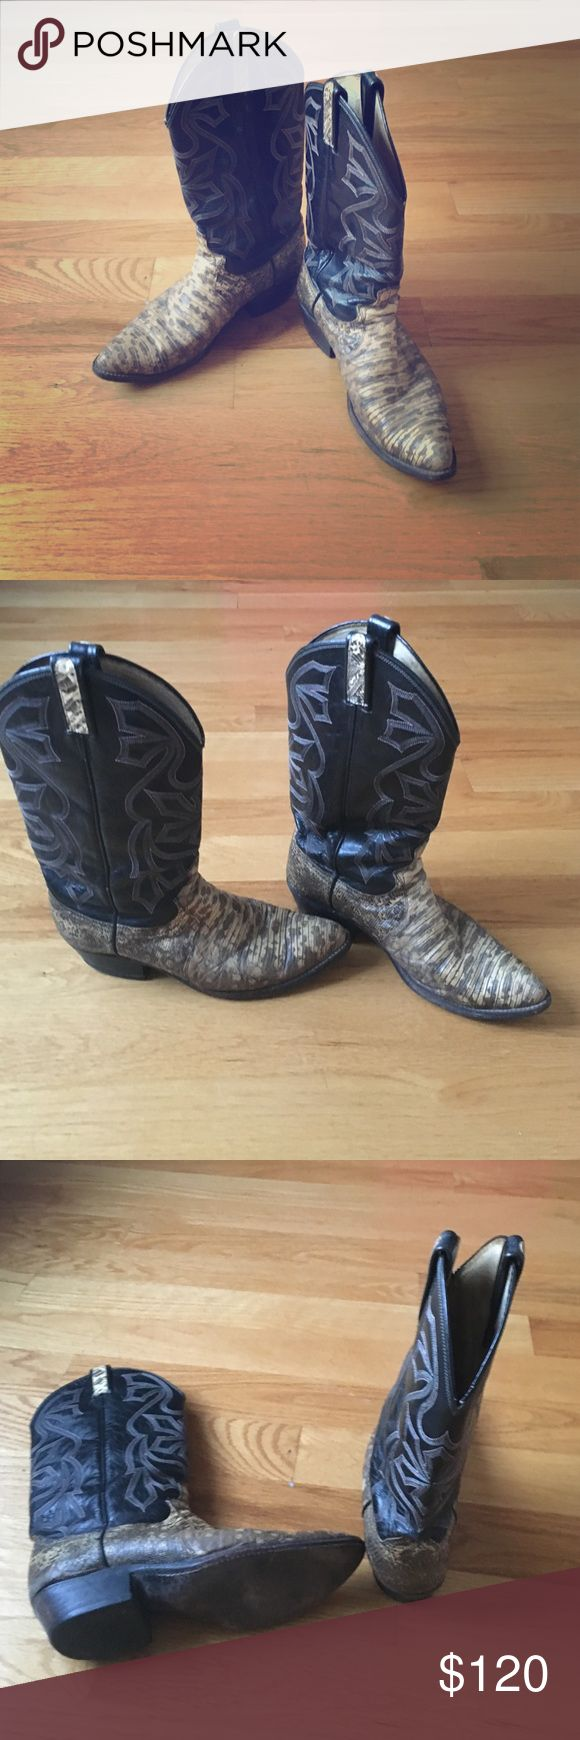 Men's snakeskin cowboy boots Leather and snakeskin Dan Post genuine cowboy boots. Made in USA. Size approximate. Dan Post Shoes Cowboy & Western Boots